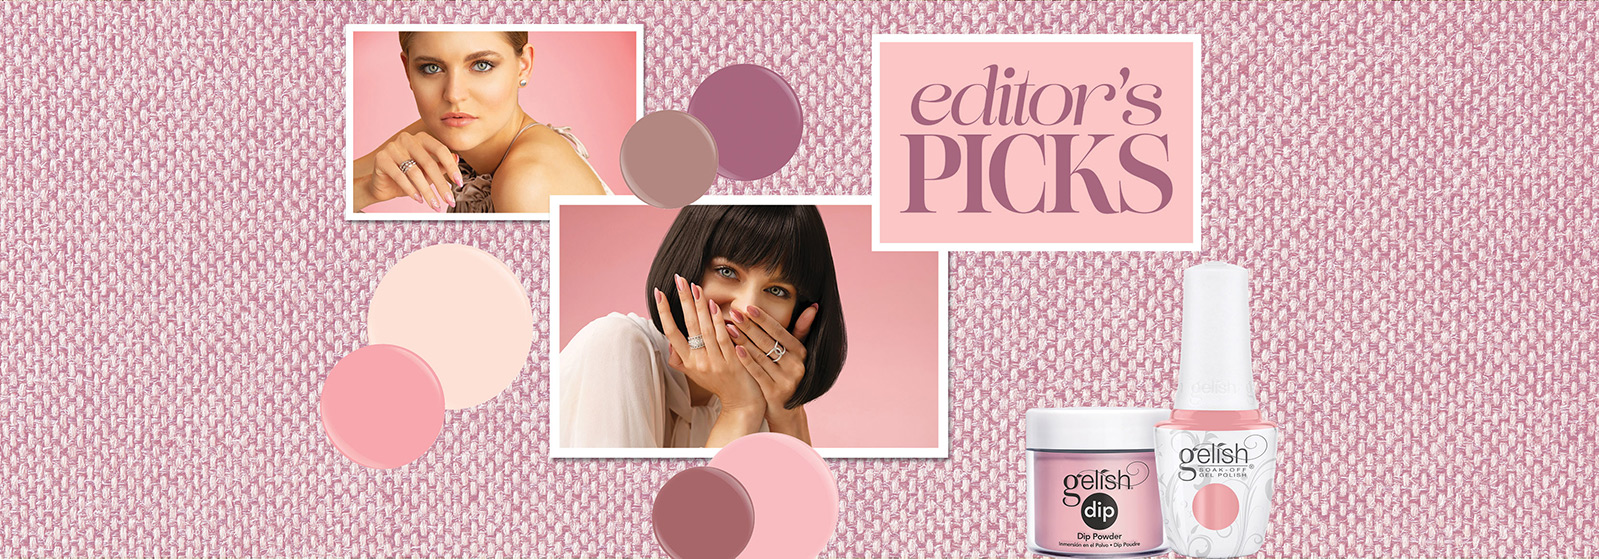 Editor's Picks - Collection Spring 2020